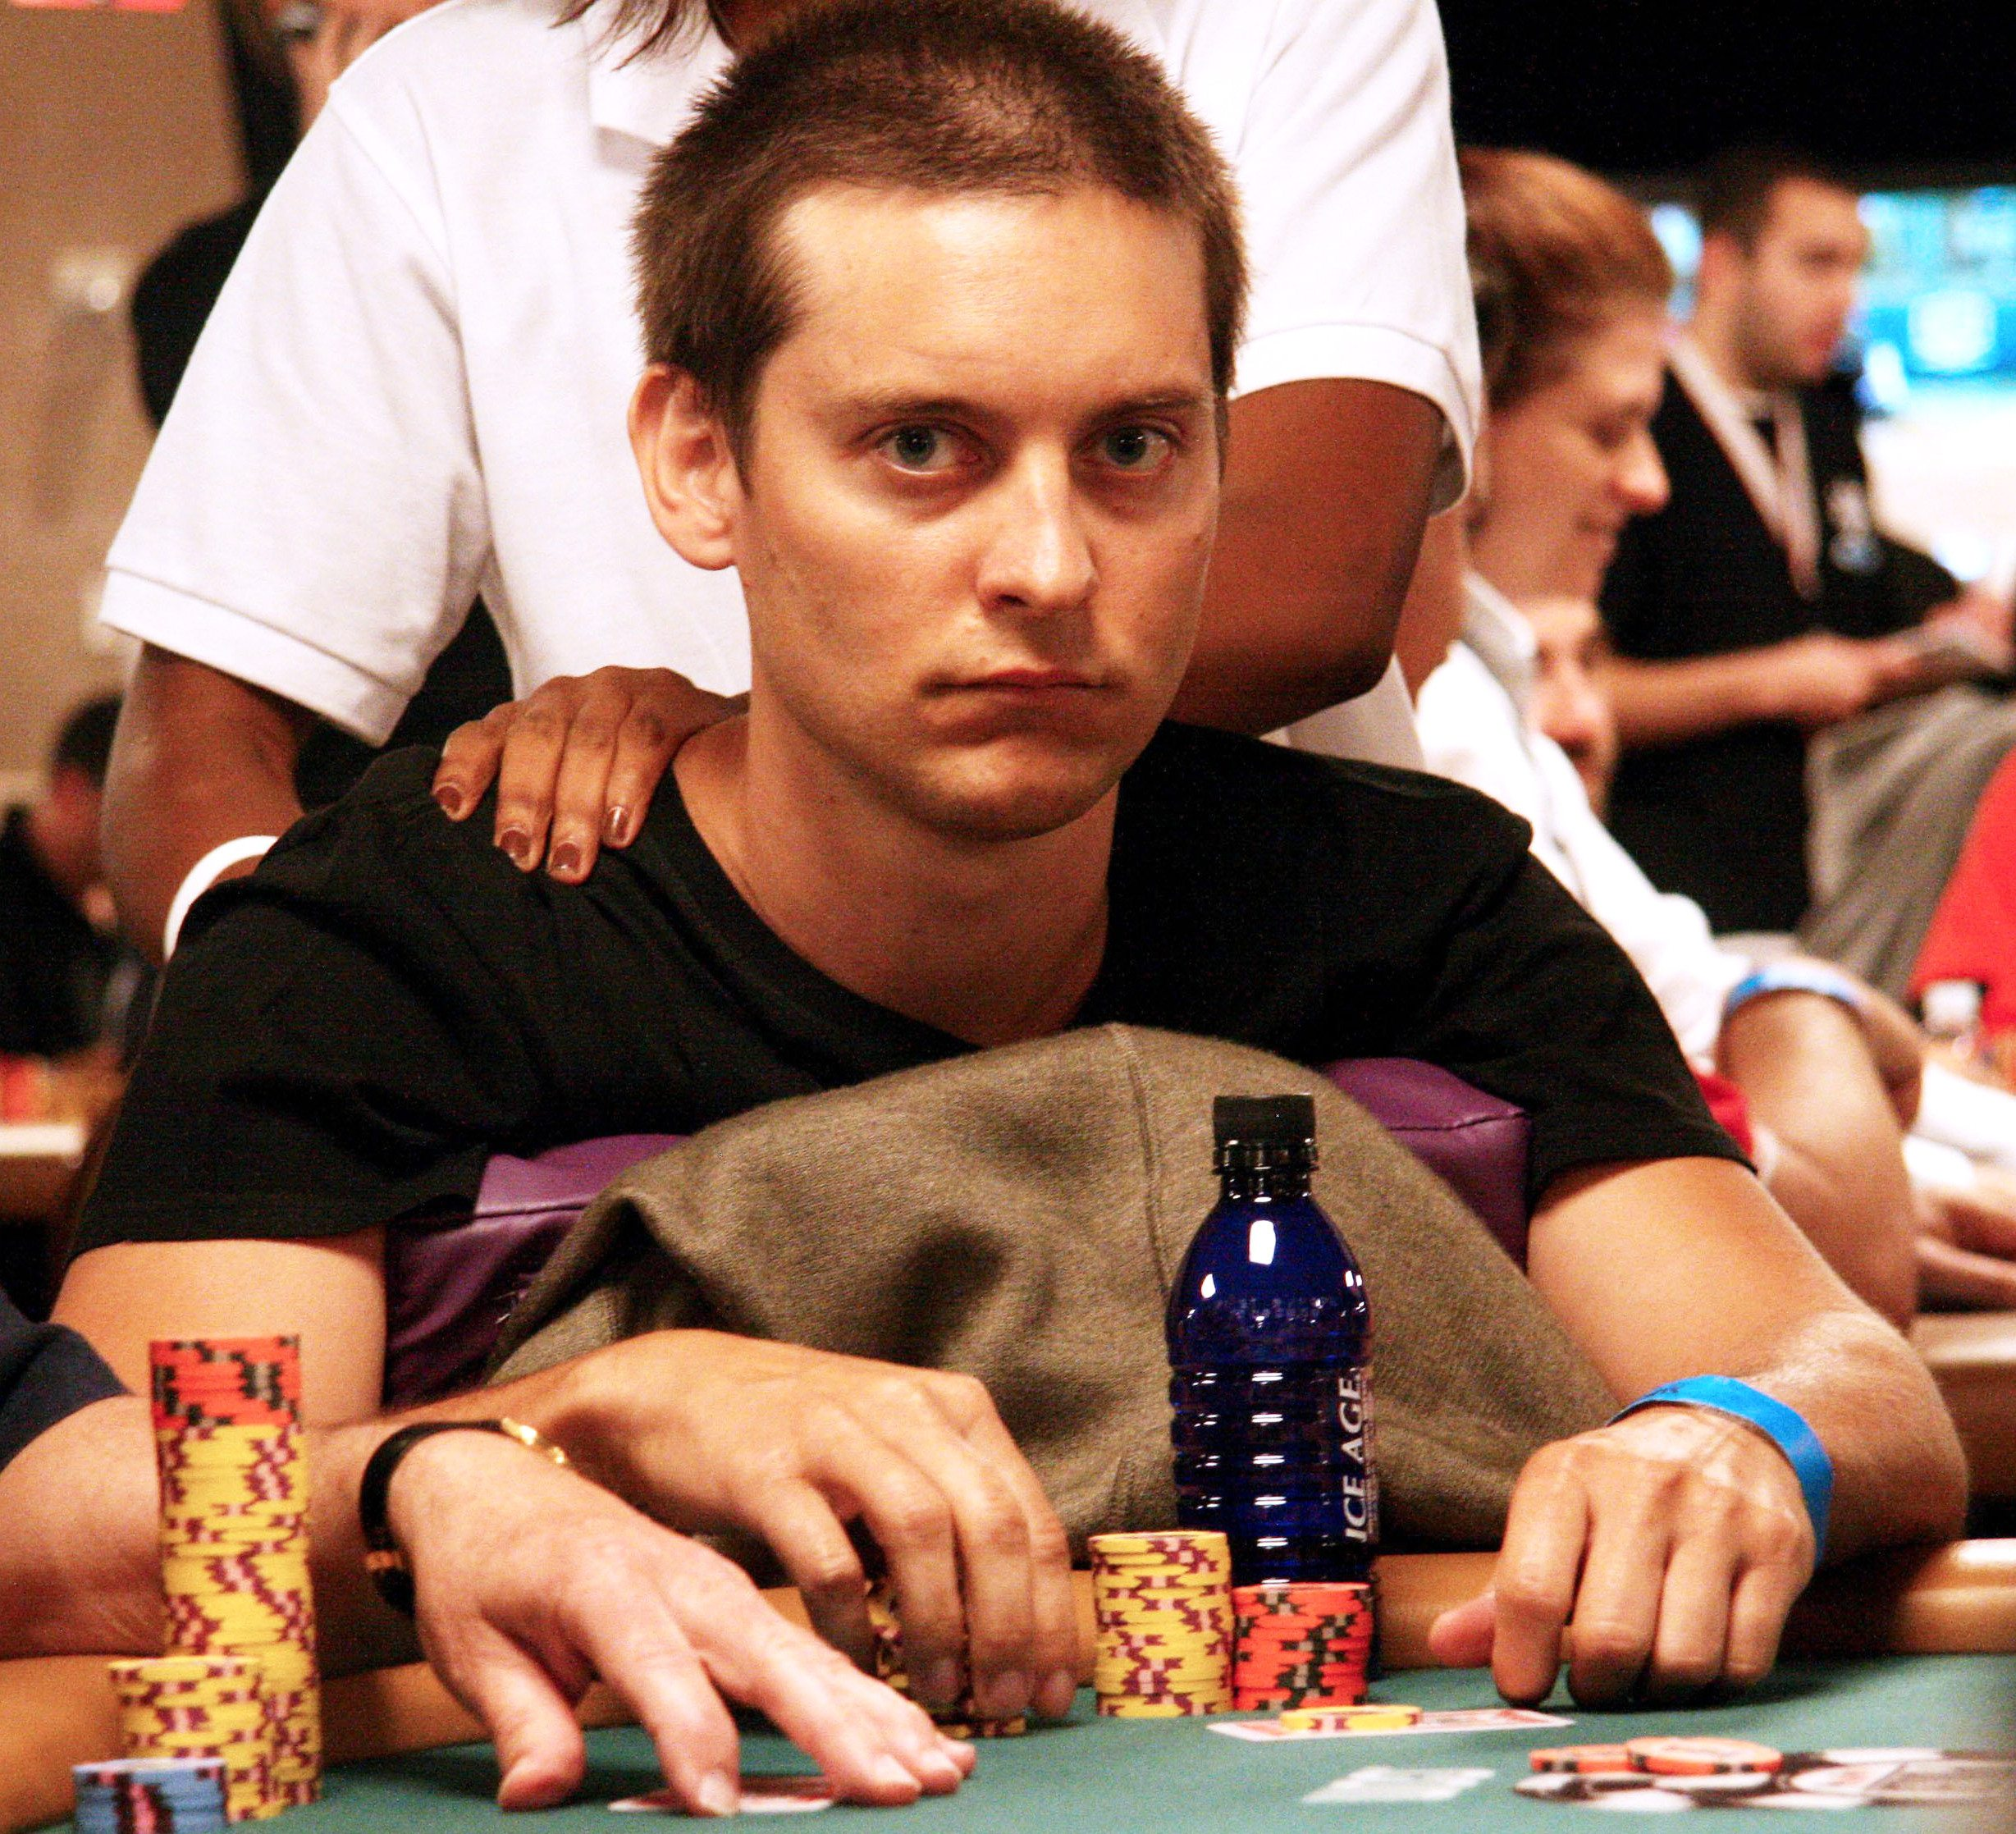 Tobey Maguire competing at the World Series of Poker